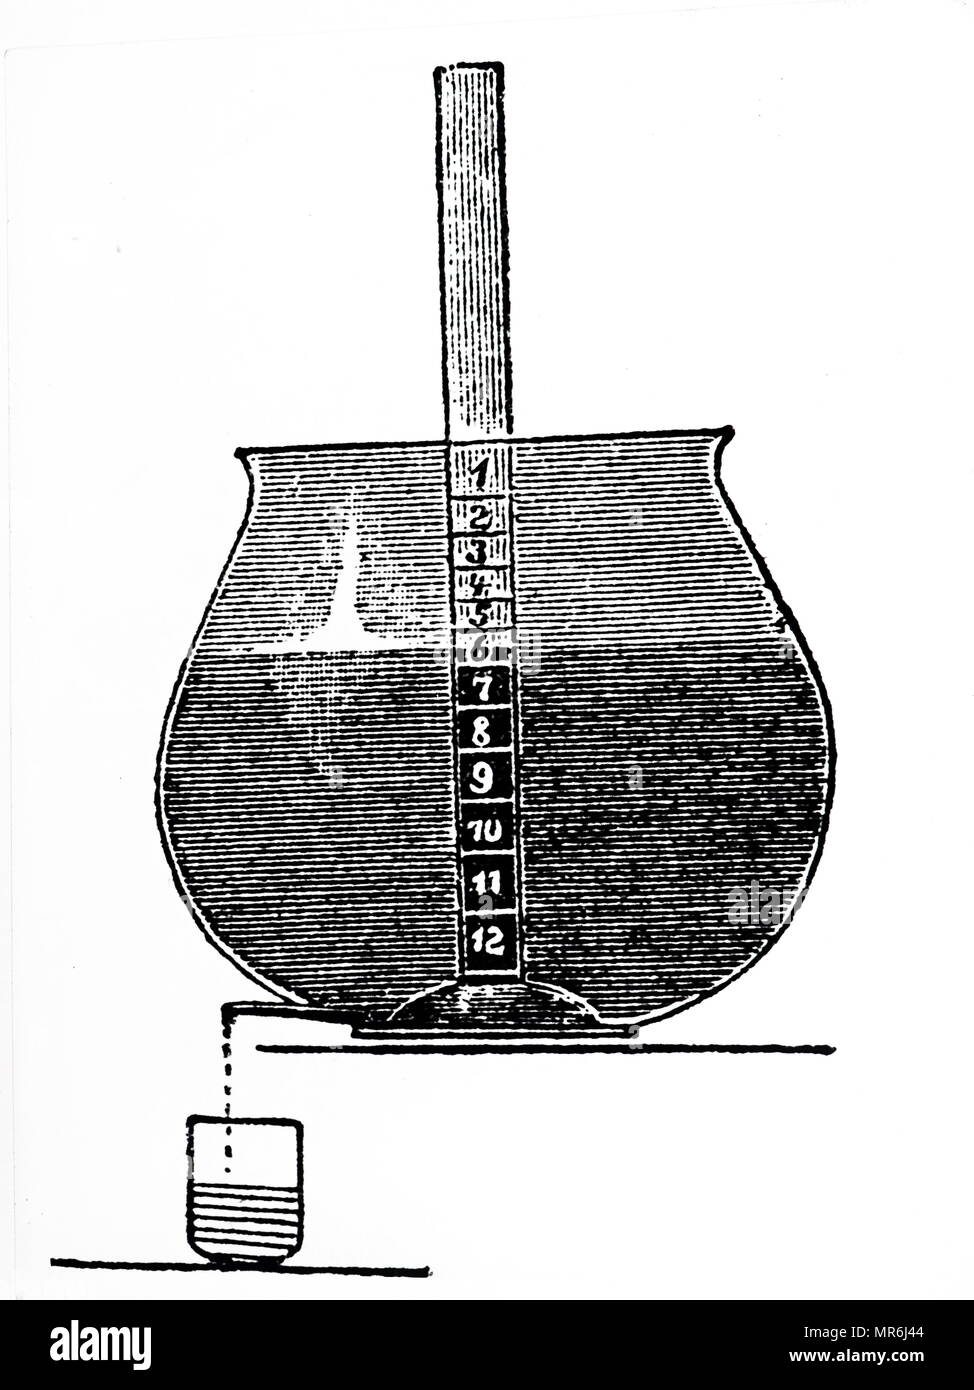 medium resolution of 19th century diagram of a simple water clock where water is allowed to escape at a controlled rate from a spout at the bottom the divisions allowed for the